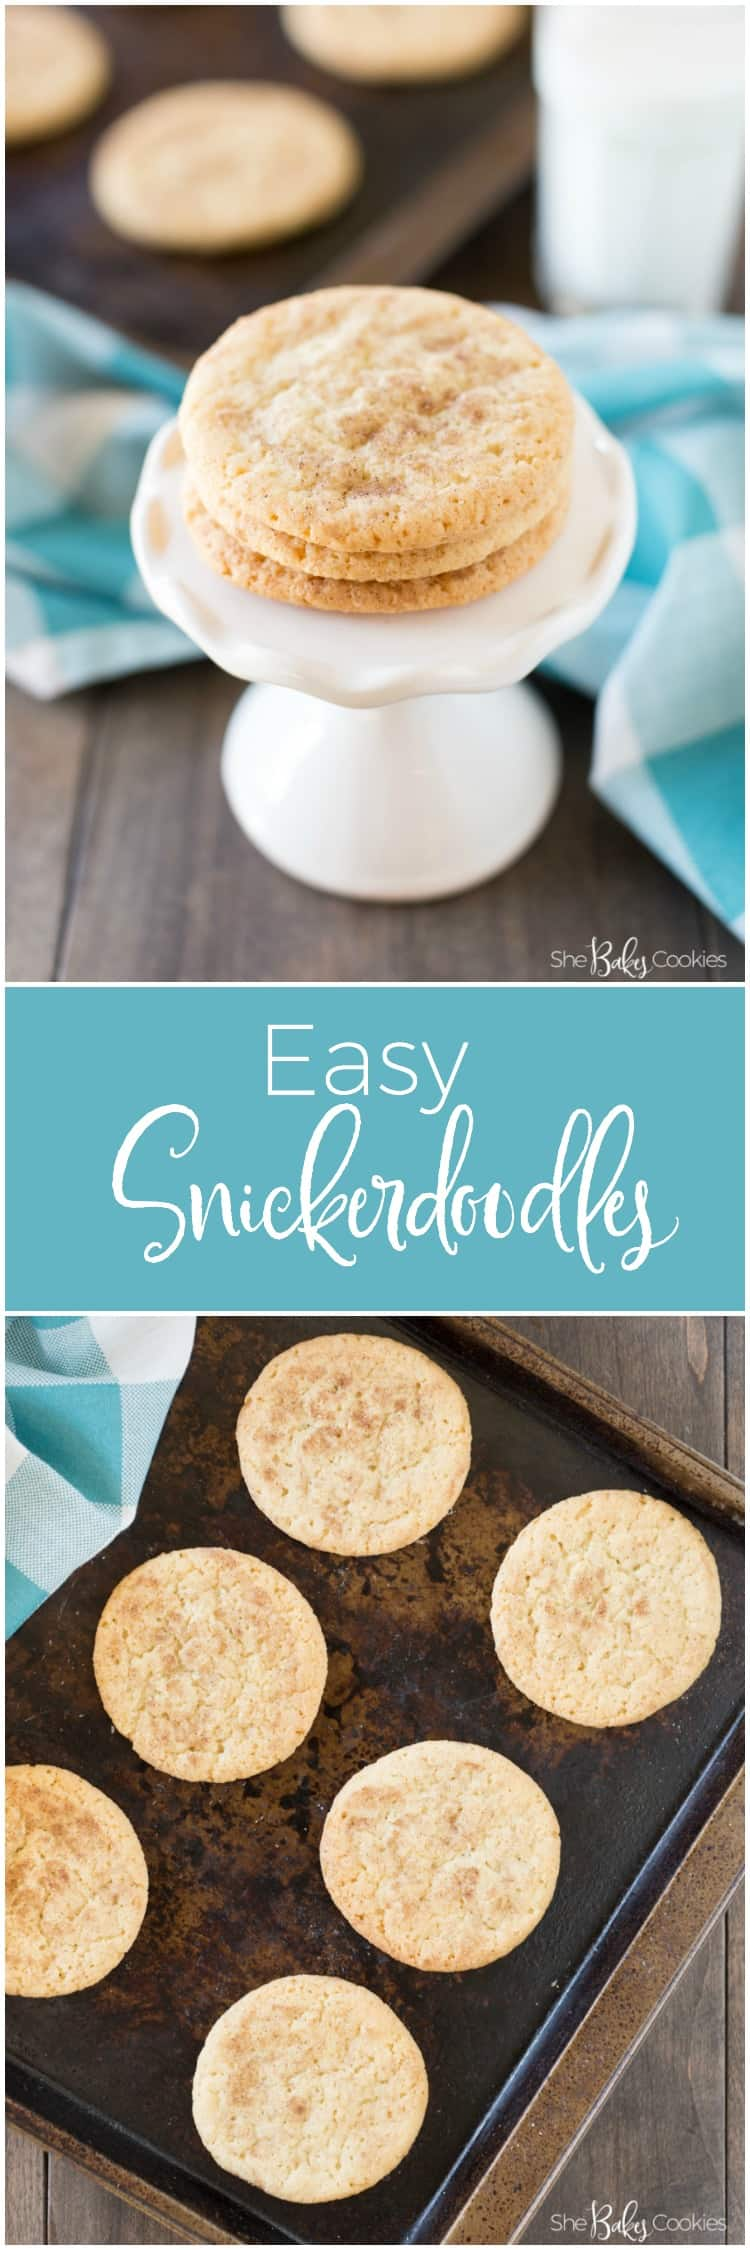 Easy snickerdoodle recipe on cookie sheet baked and on a white pedestal serving platter with a blue gingham towel in the background